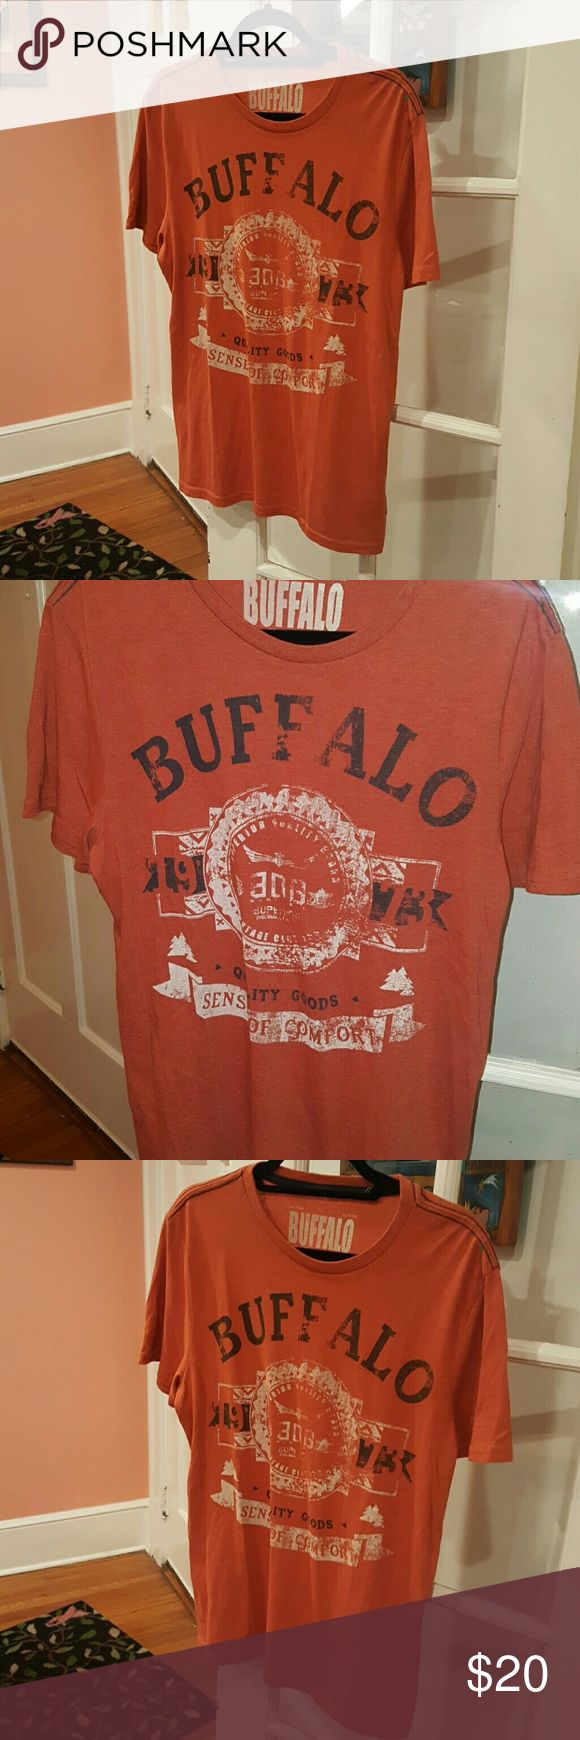 BUFFALO DAVID BITTON ORANGE T EE SHIRT M print Medium  David bitton shirt Orange  Great condition Buffalo David Bitton Shirts Tees - Short Sleeve